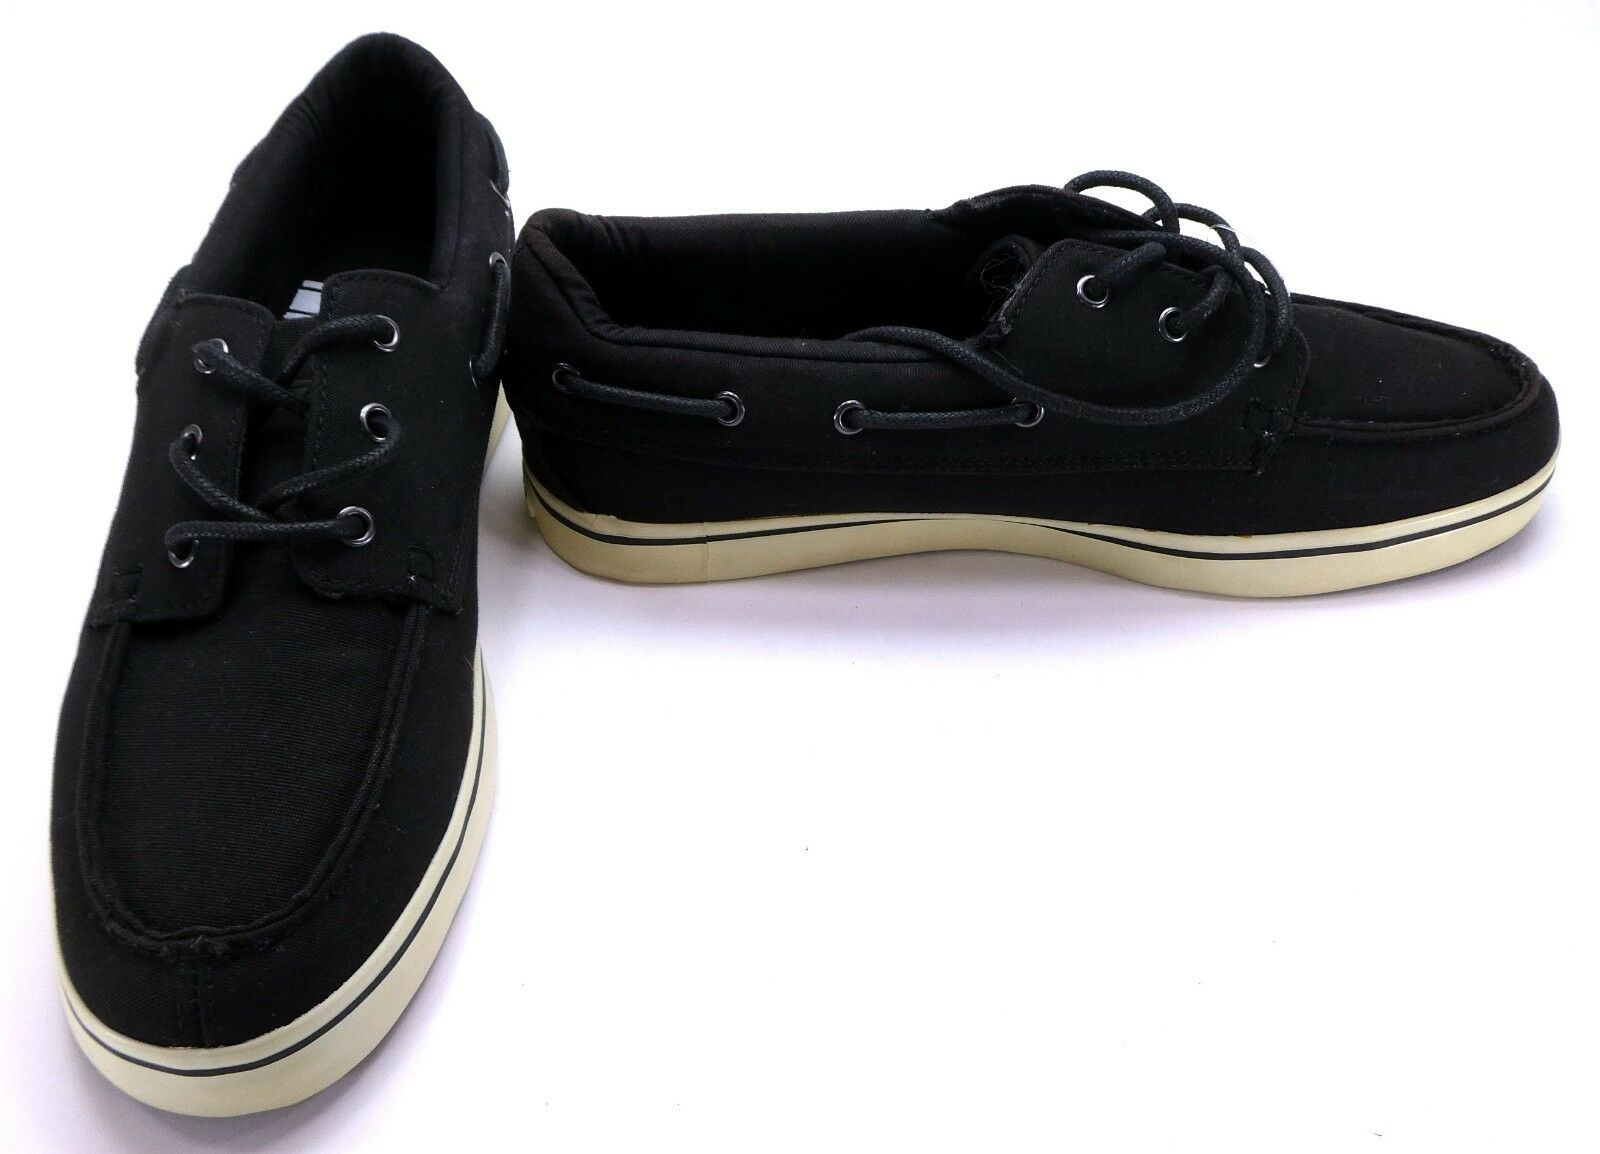 Lugz Boat shoes Marsh Canvas Black Topsiders Size 8.5